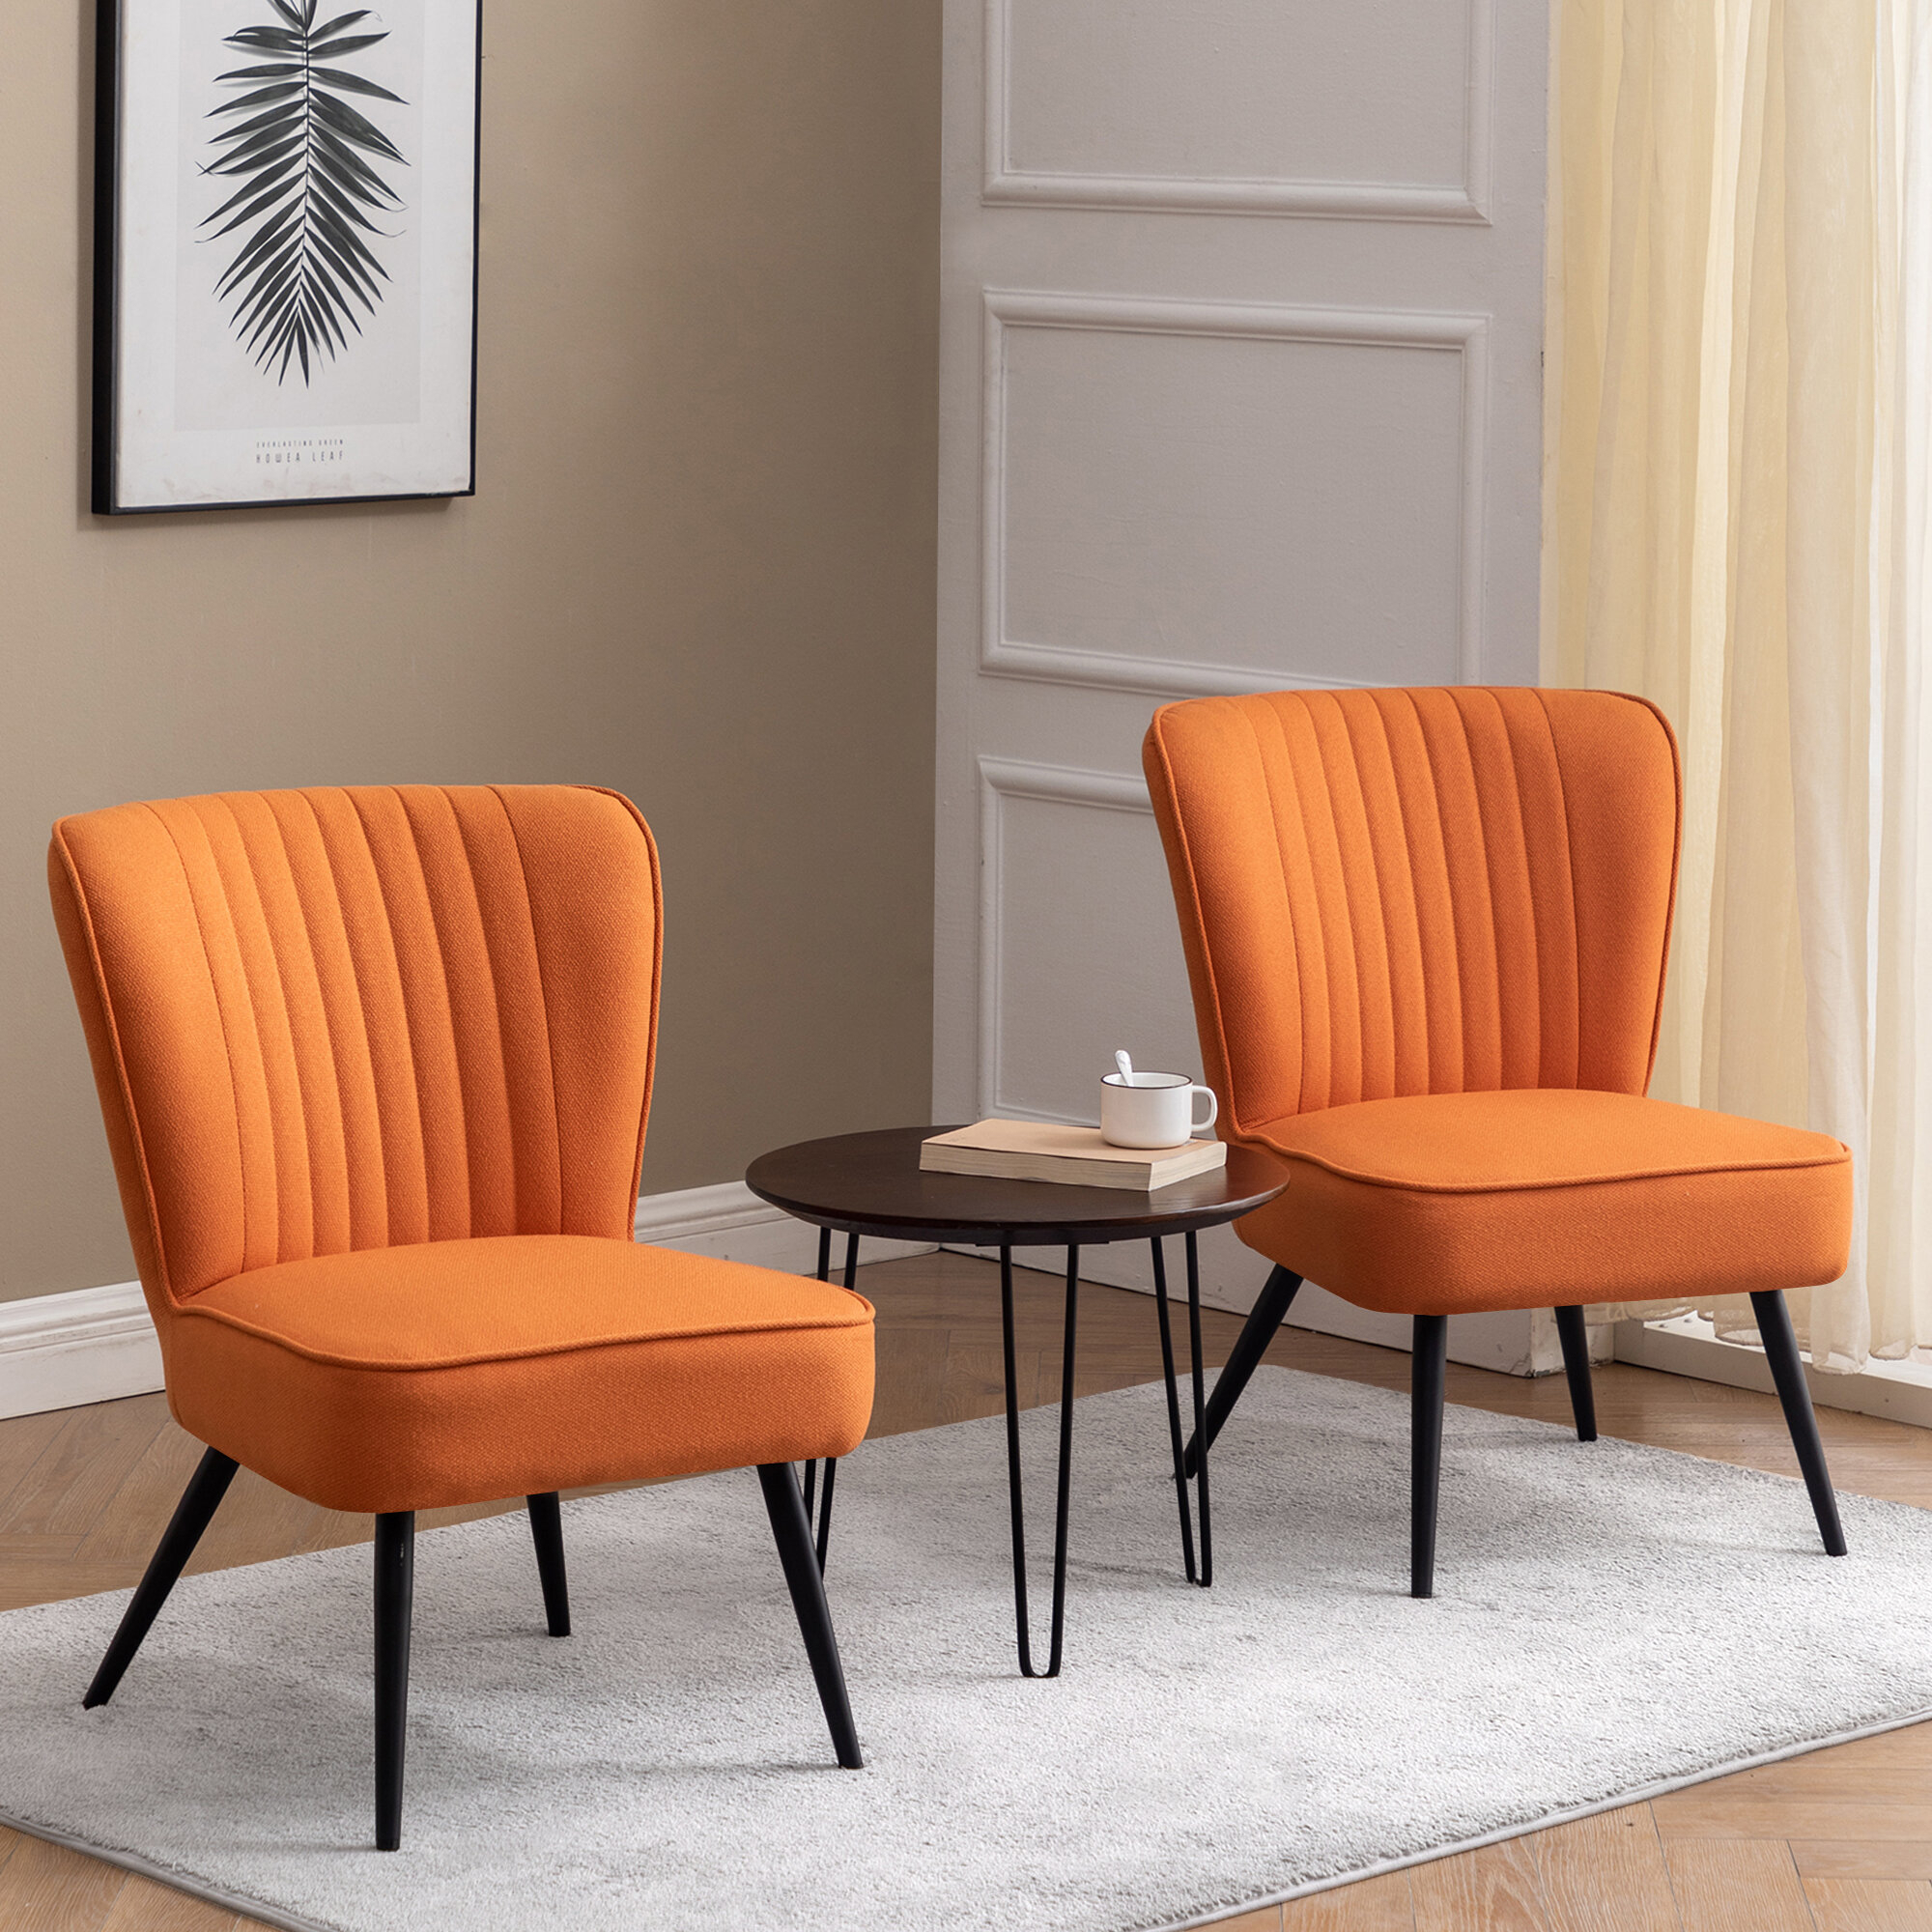 Linen Slipper Accent Chairs You'Ll Love In 2021 | Wayfair Inside Aalivia Slipper Chairs (View 12 of 15)